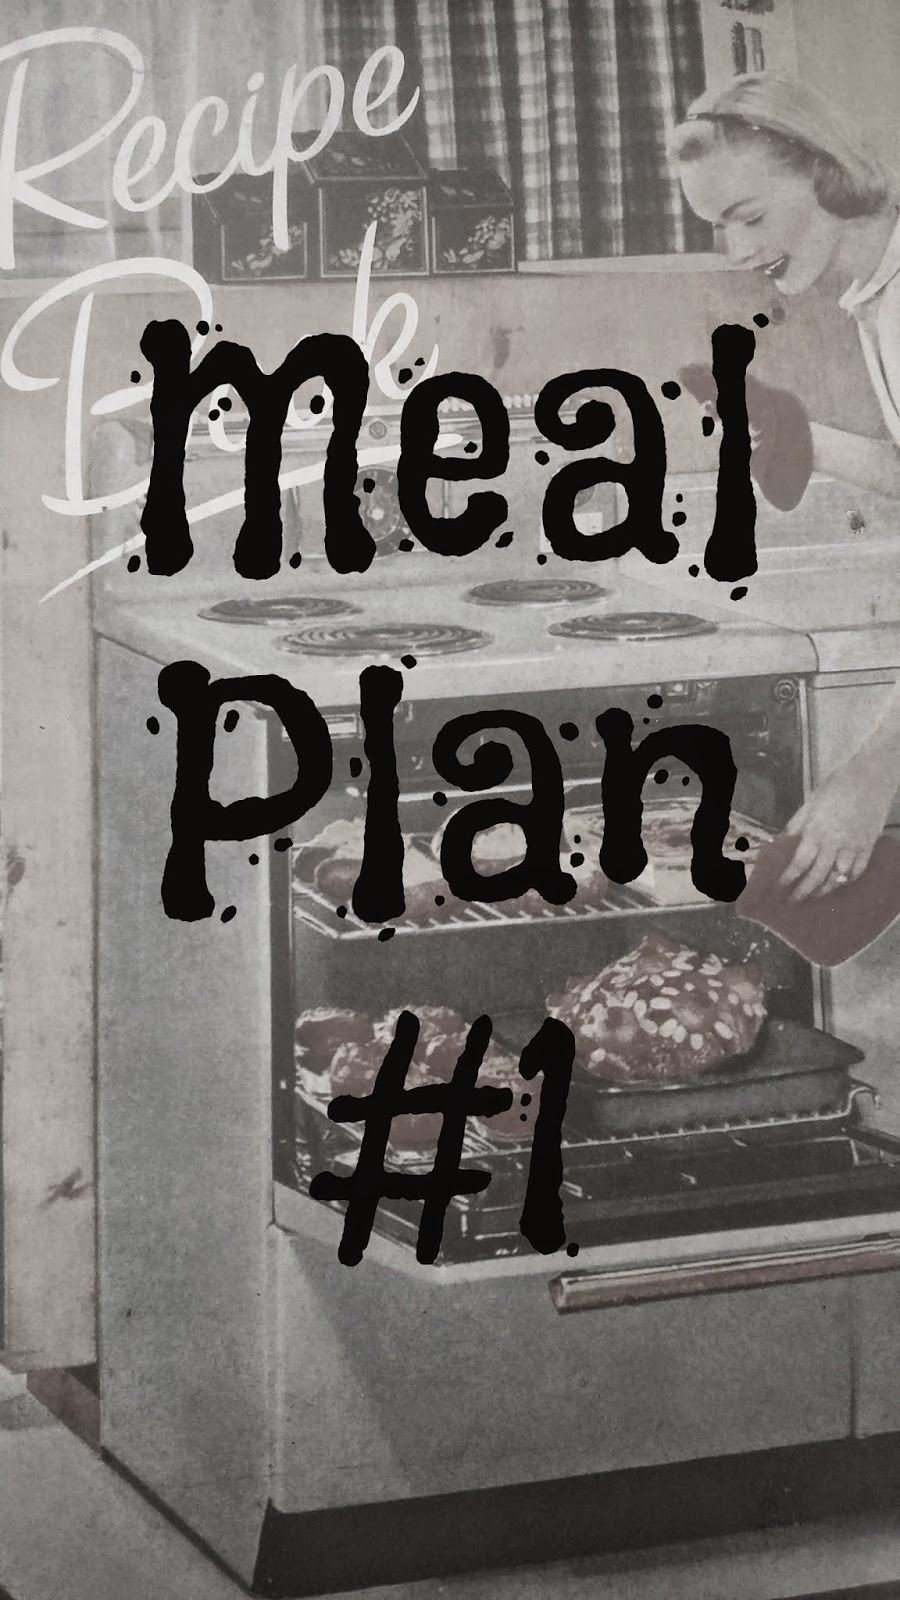 The meal plan #1